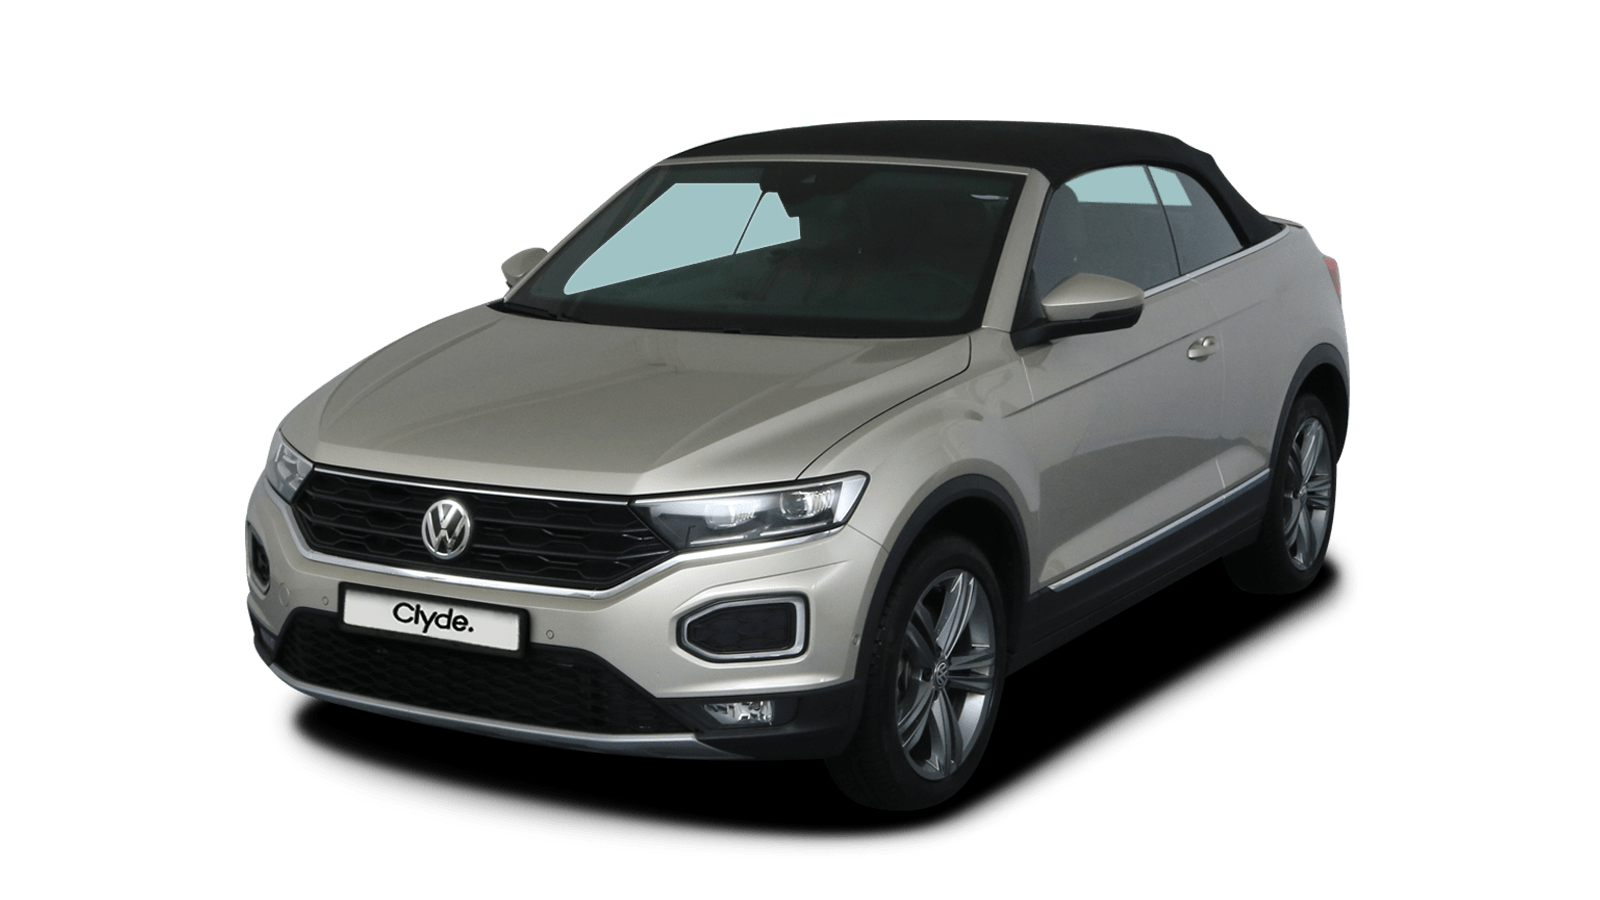 VW T-Roc Cabriolet Silber front - Clyde Auto-Abo